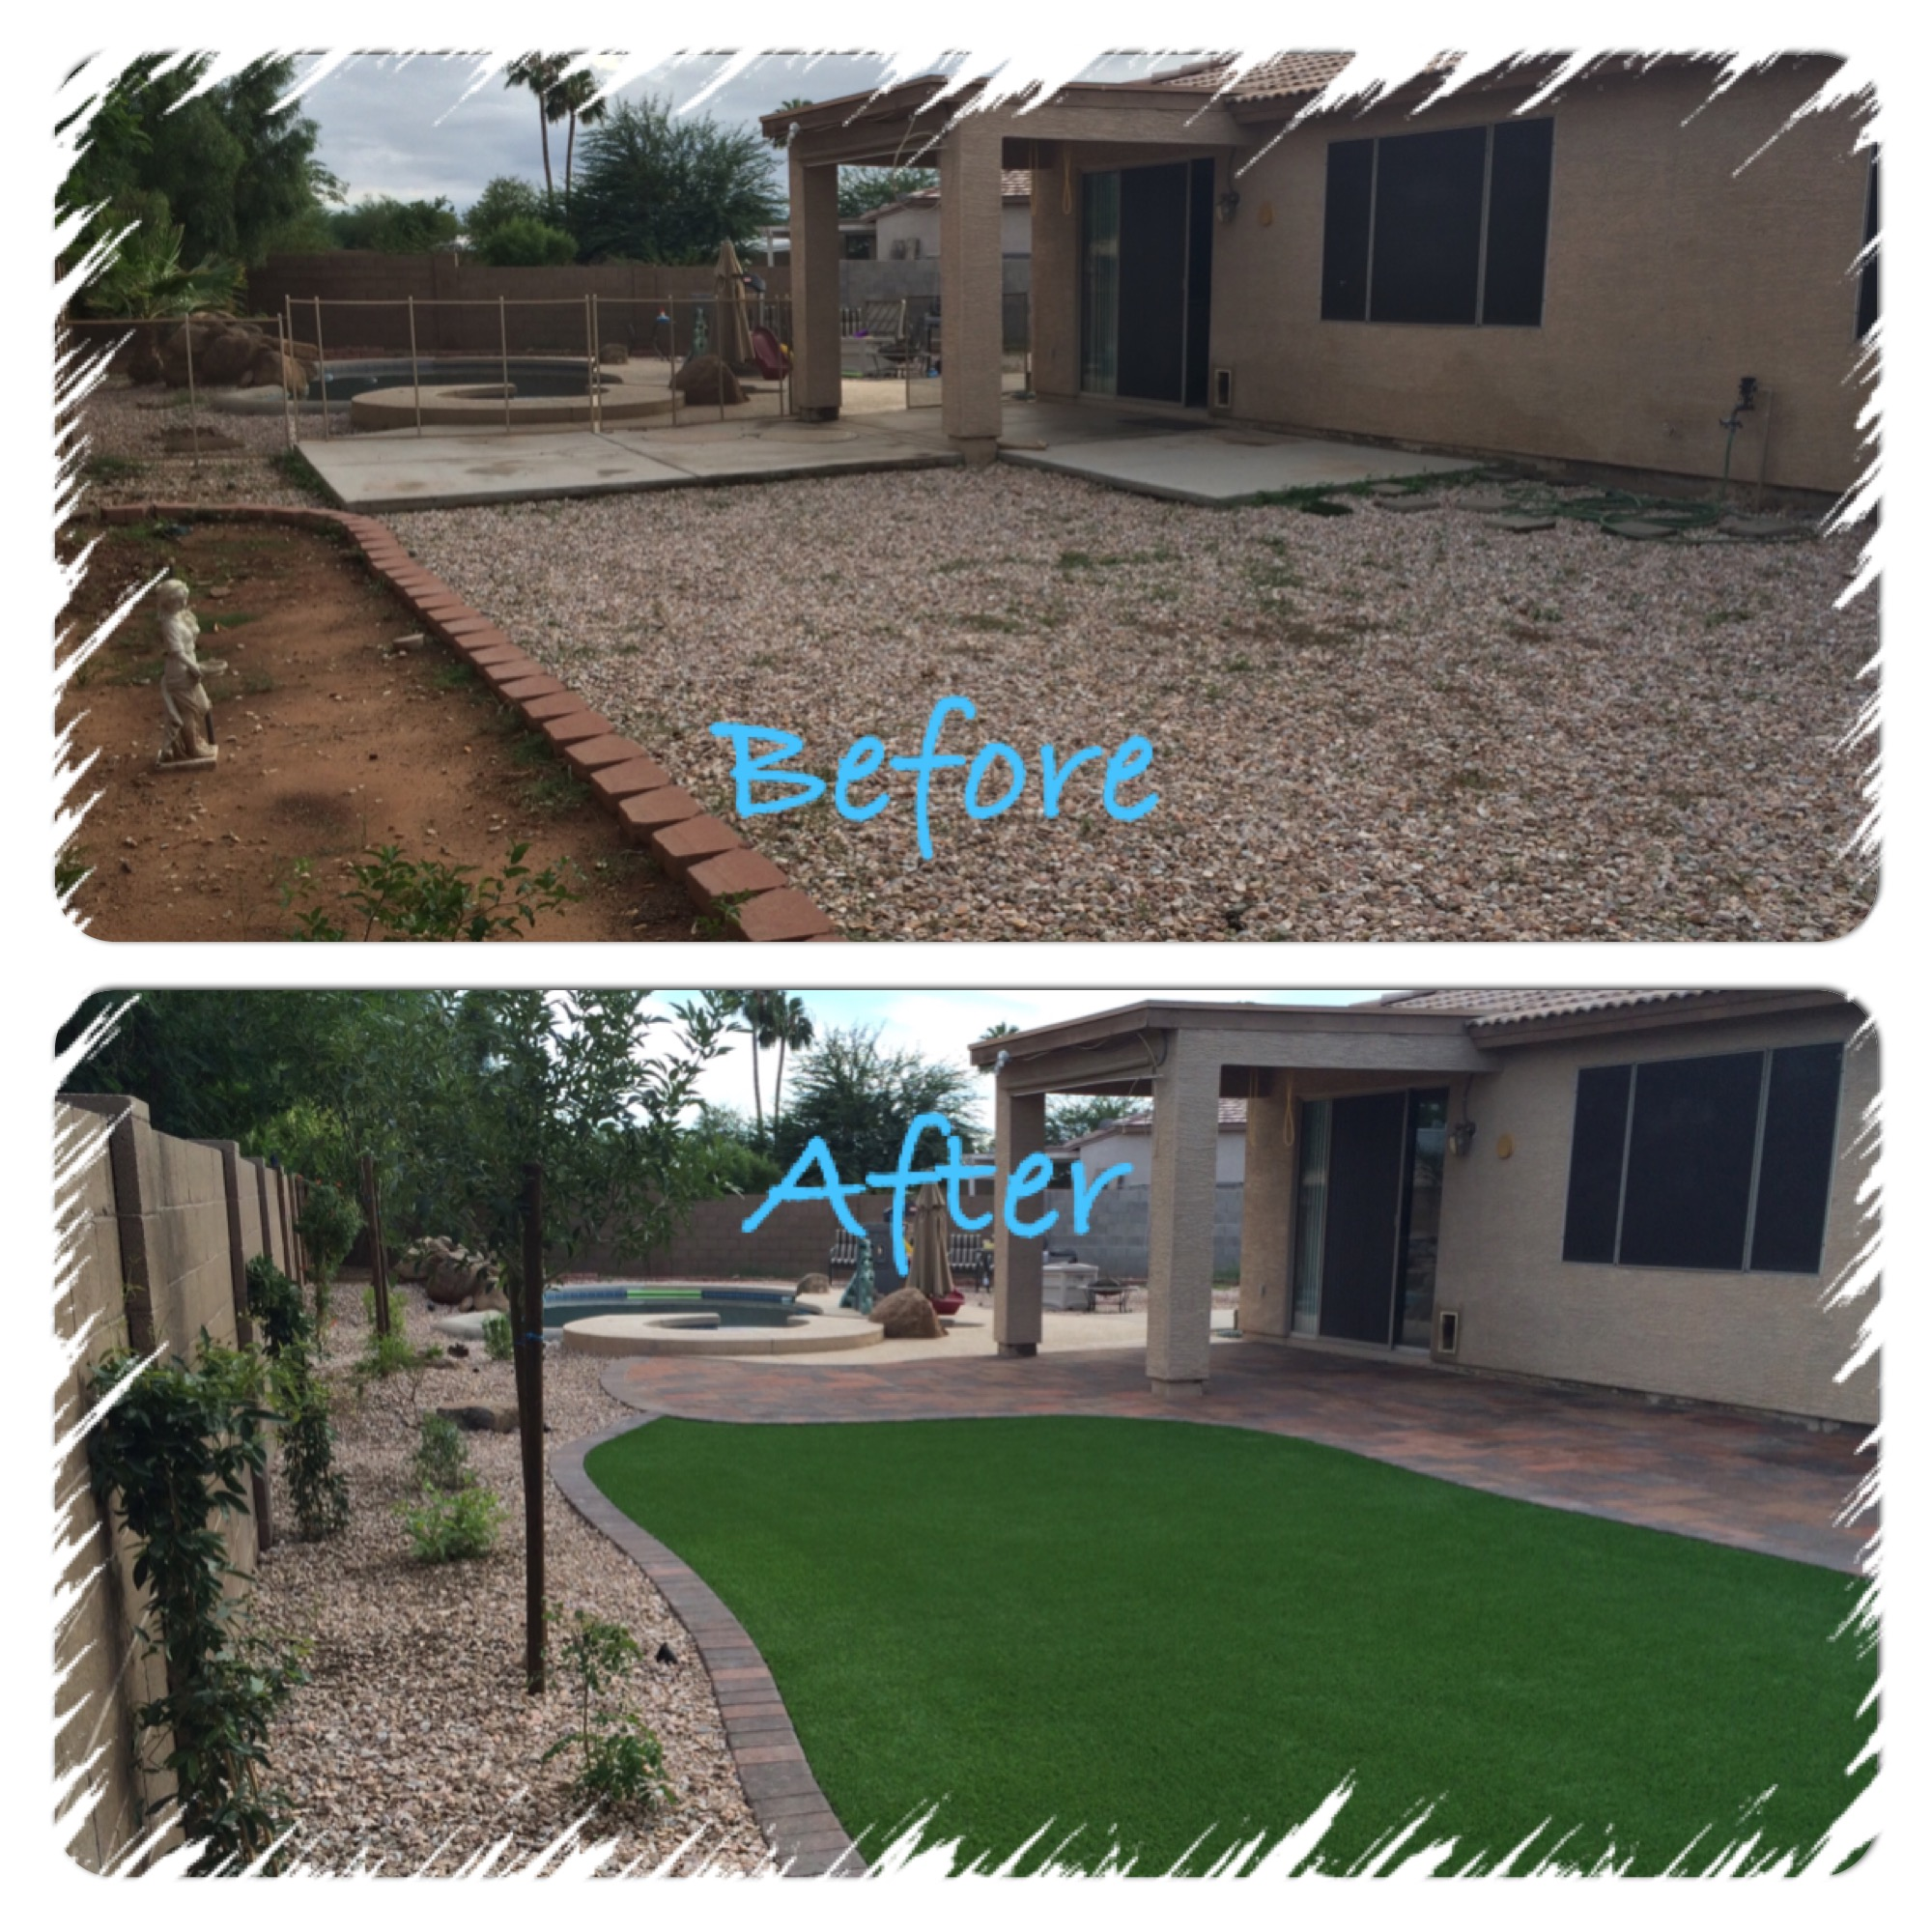 Patio designs archives arizona living landscape design for Backyard design ideas arizona